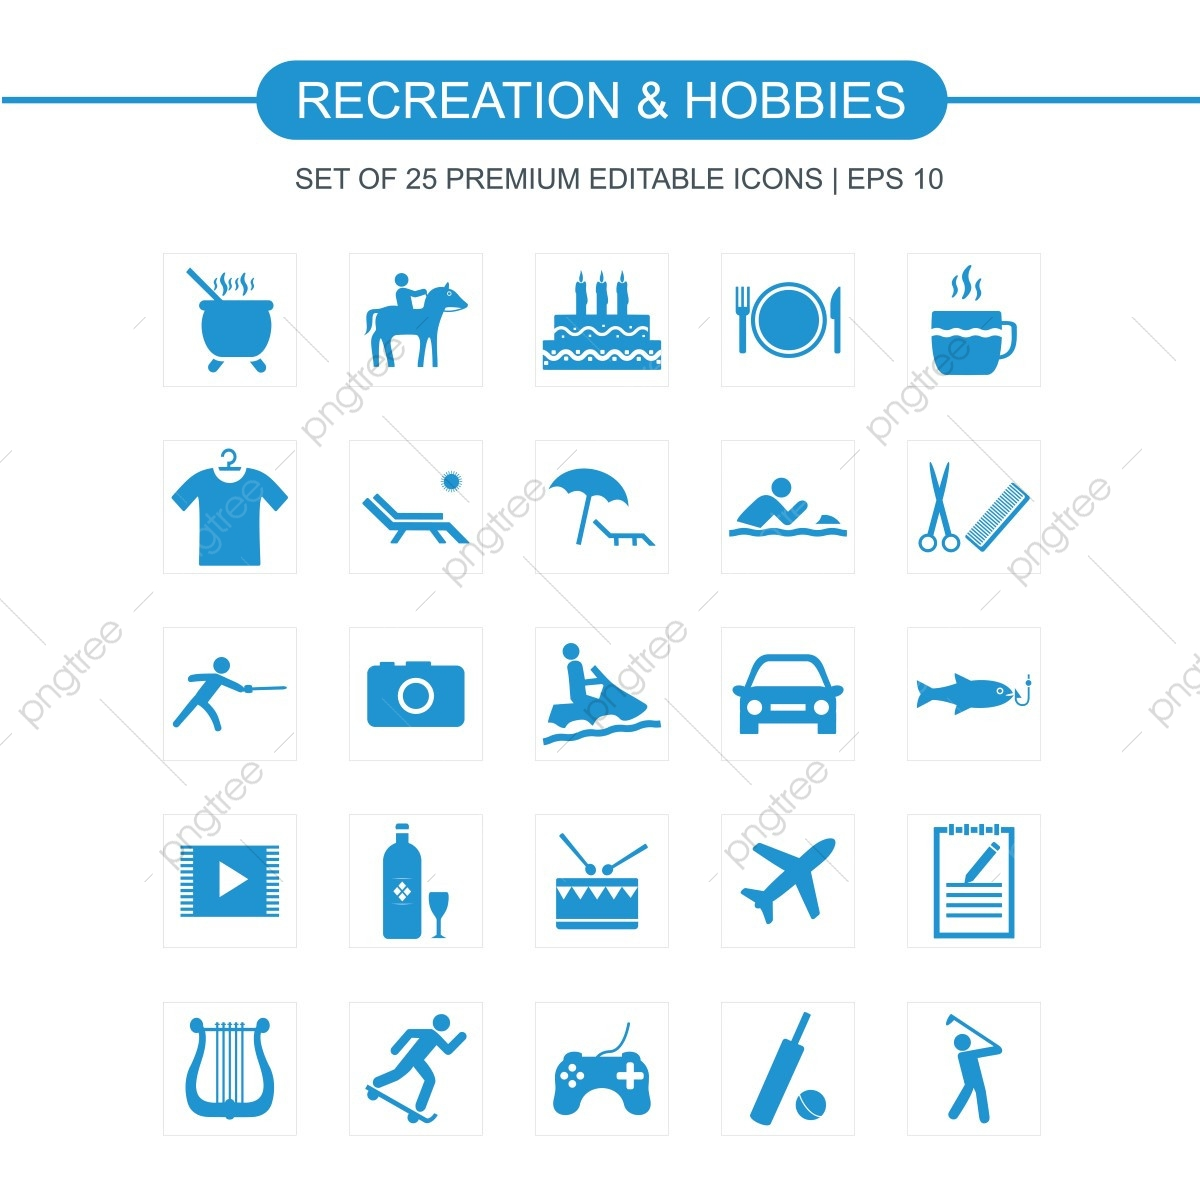 recreations and hobbies icons set  icon  hobby  hobbies